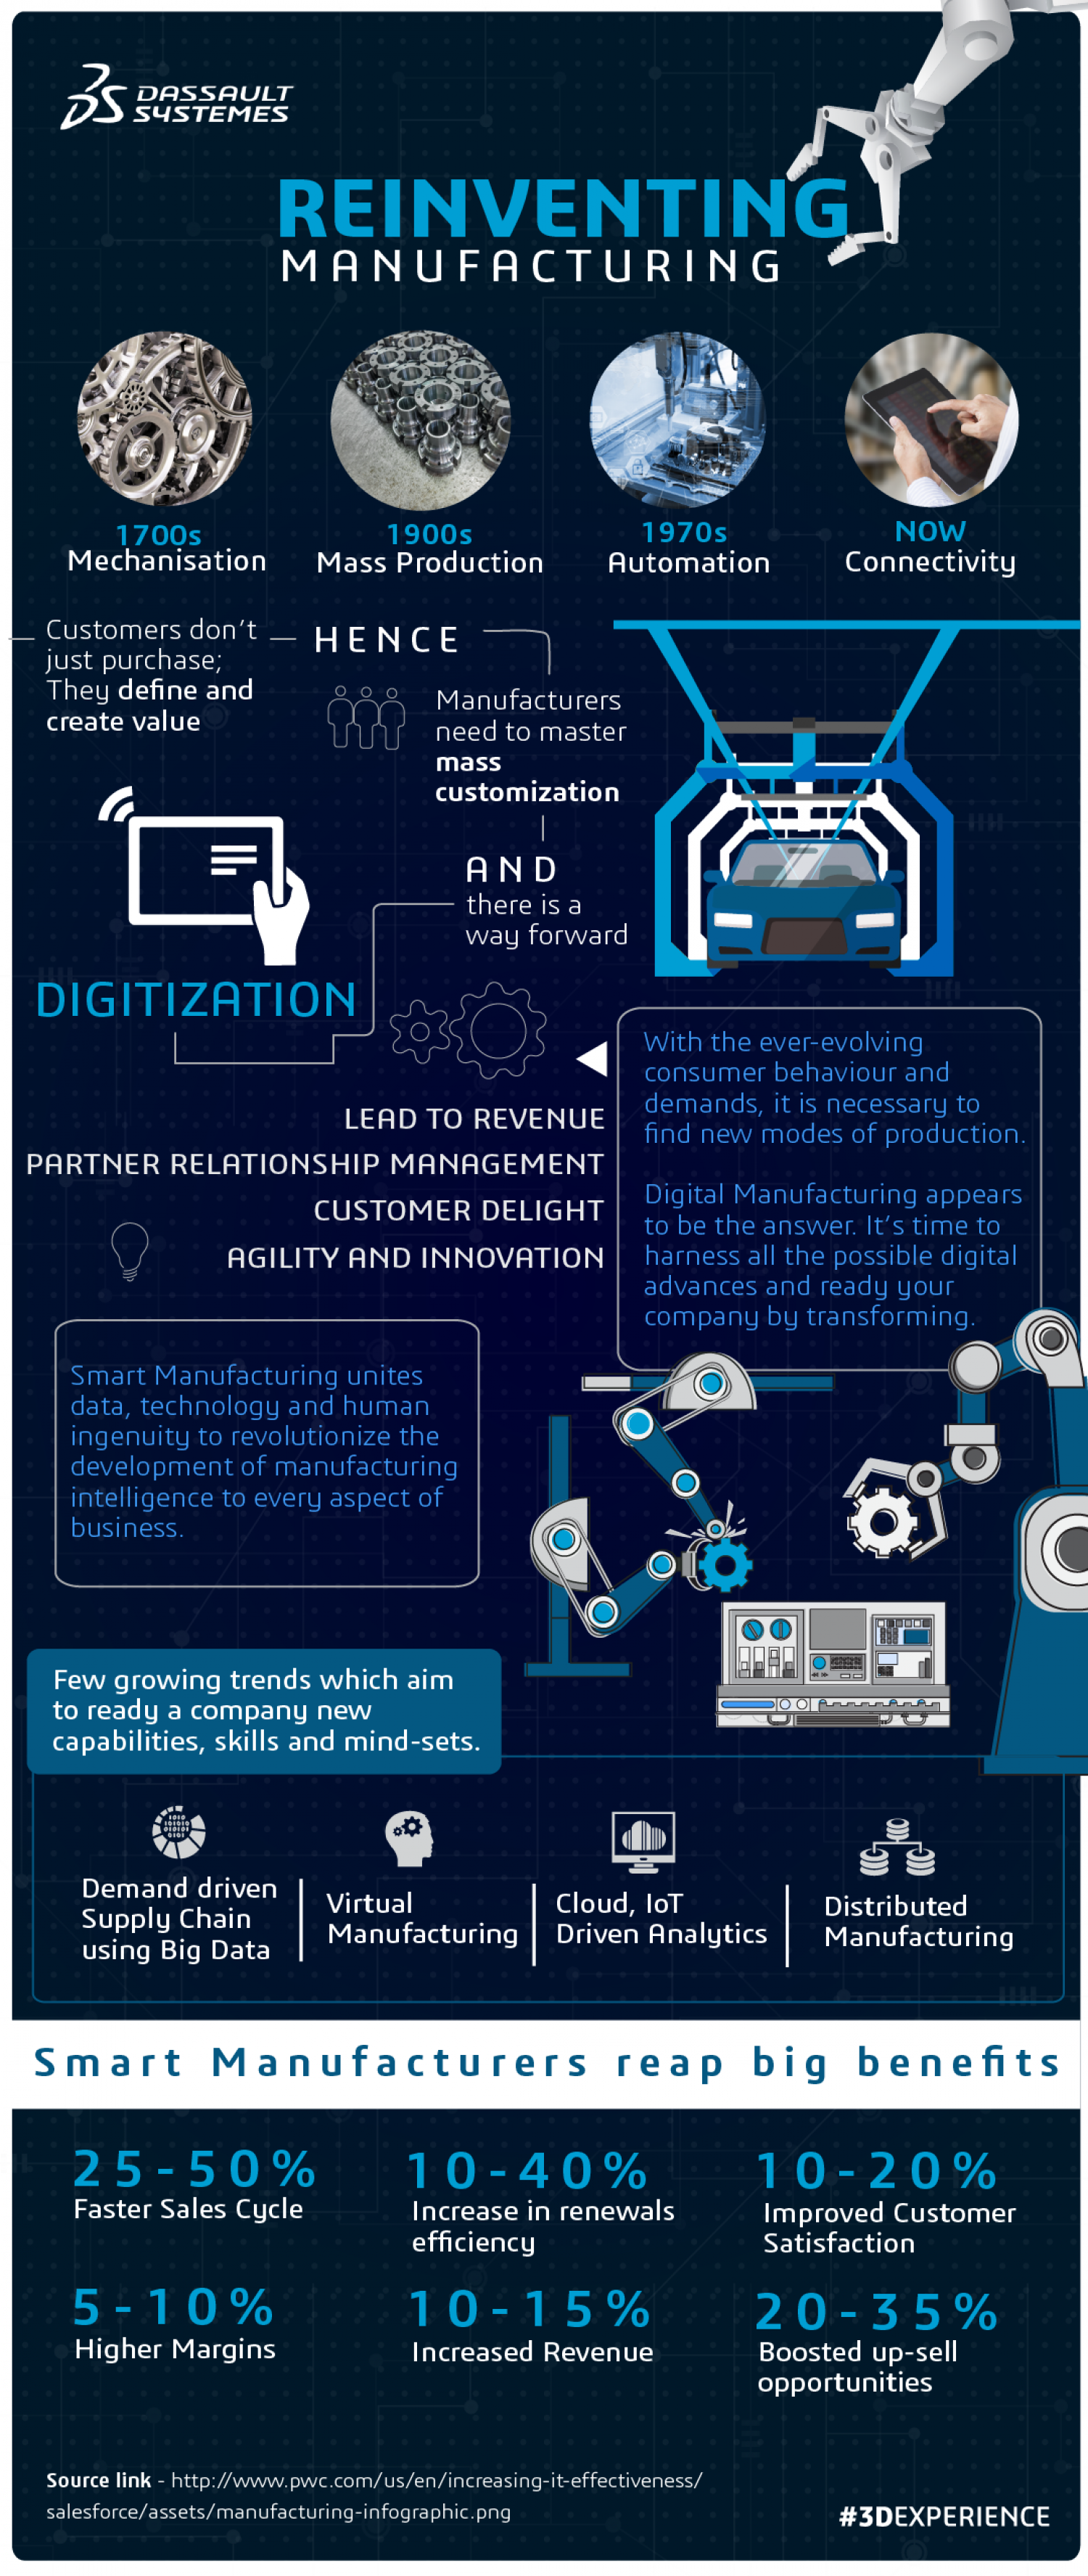 Reinventing Manufacturing In The Age Of Experience | Dassault Systemes Infographic